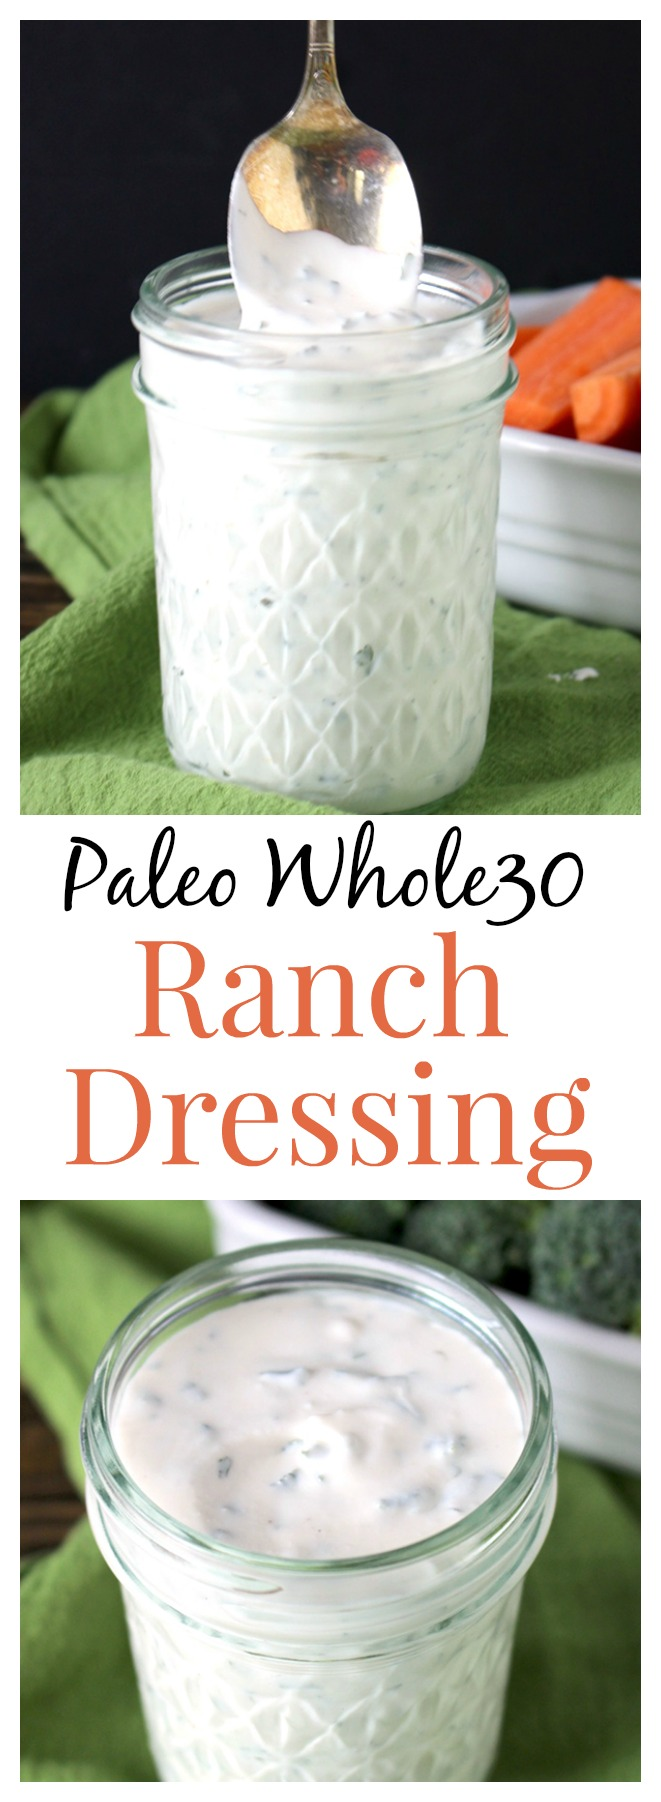 Paleo Whole30 Ranch